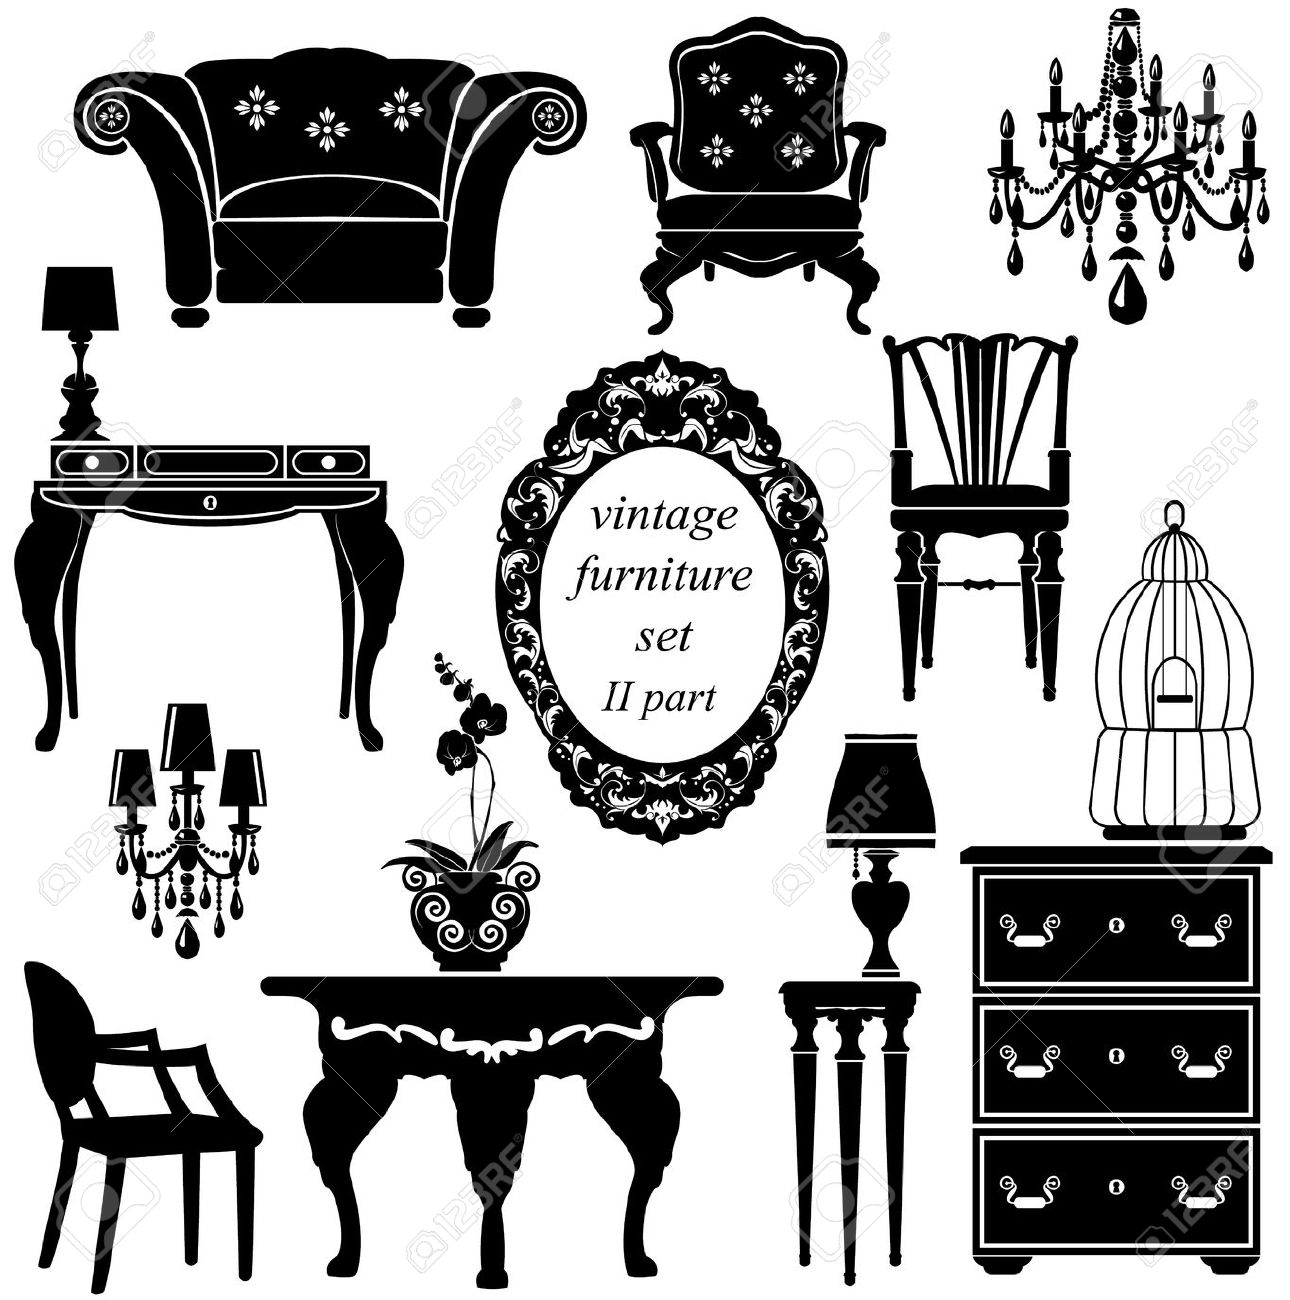 7223 Household Furniture Stock Illustrations Cliparts And